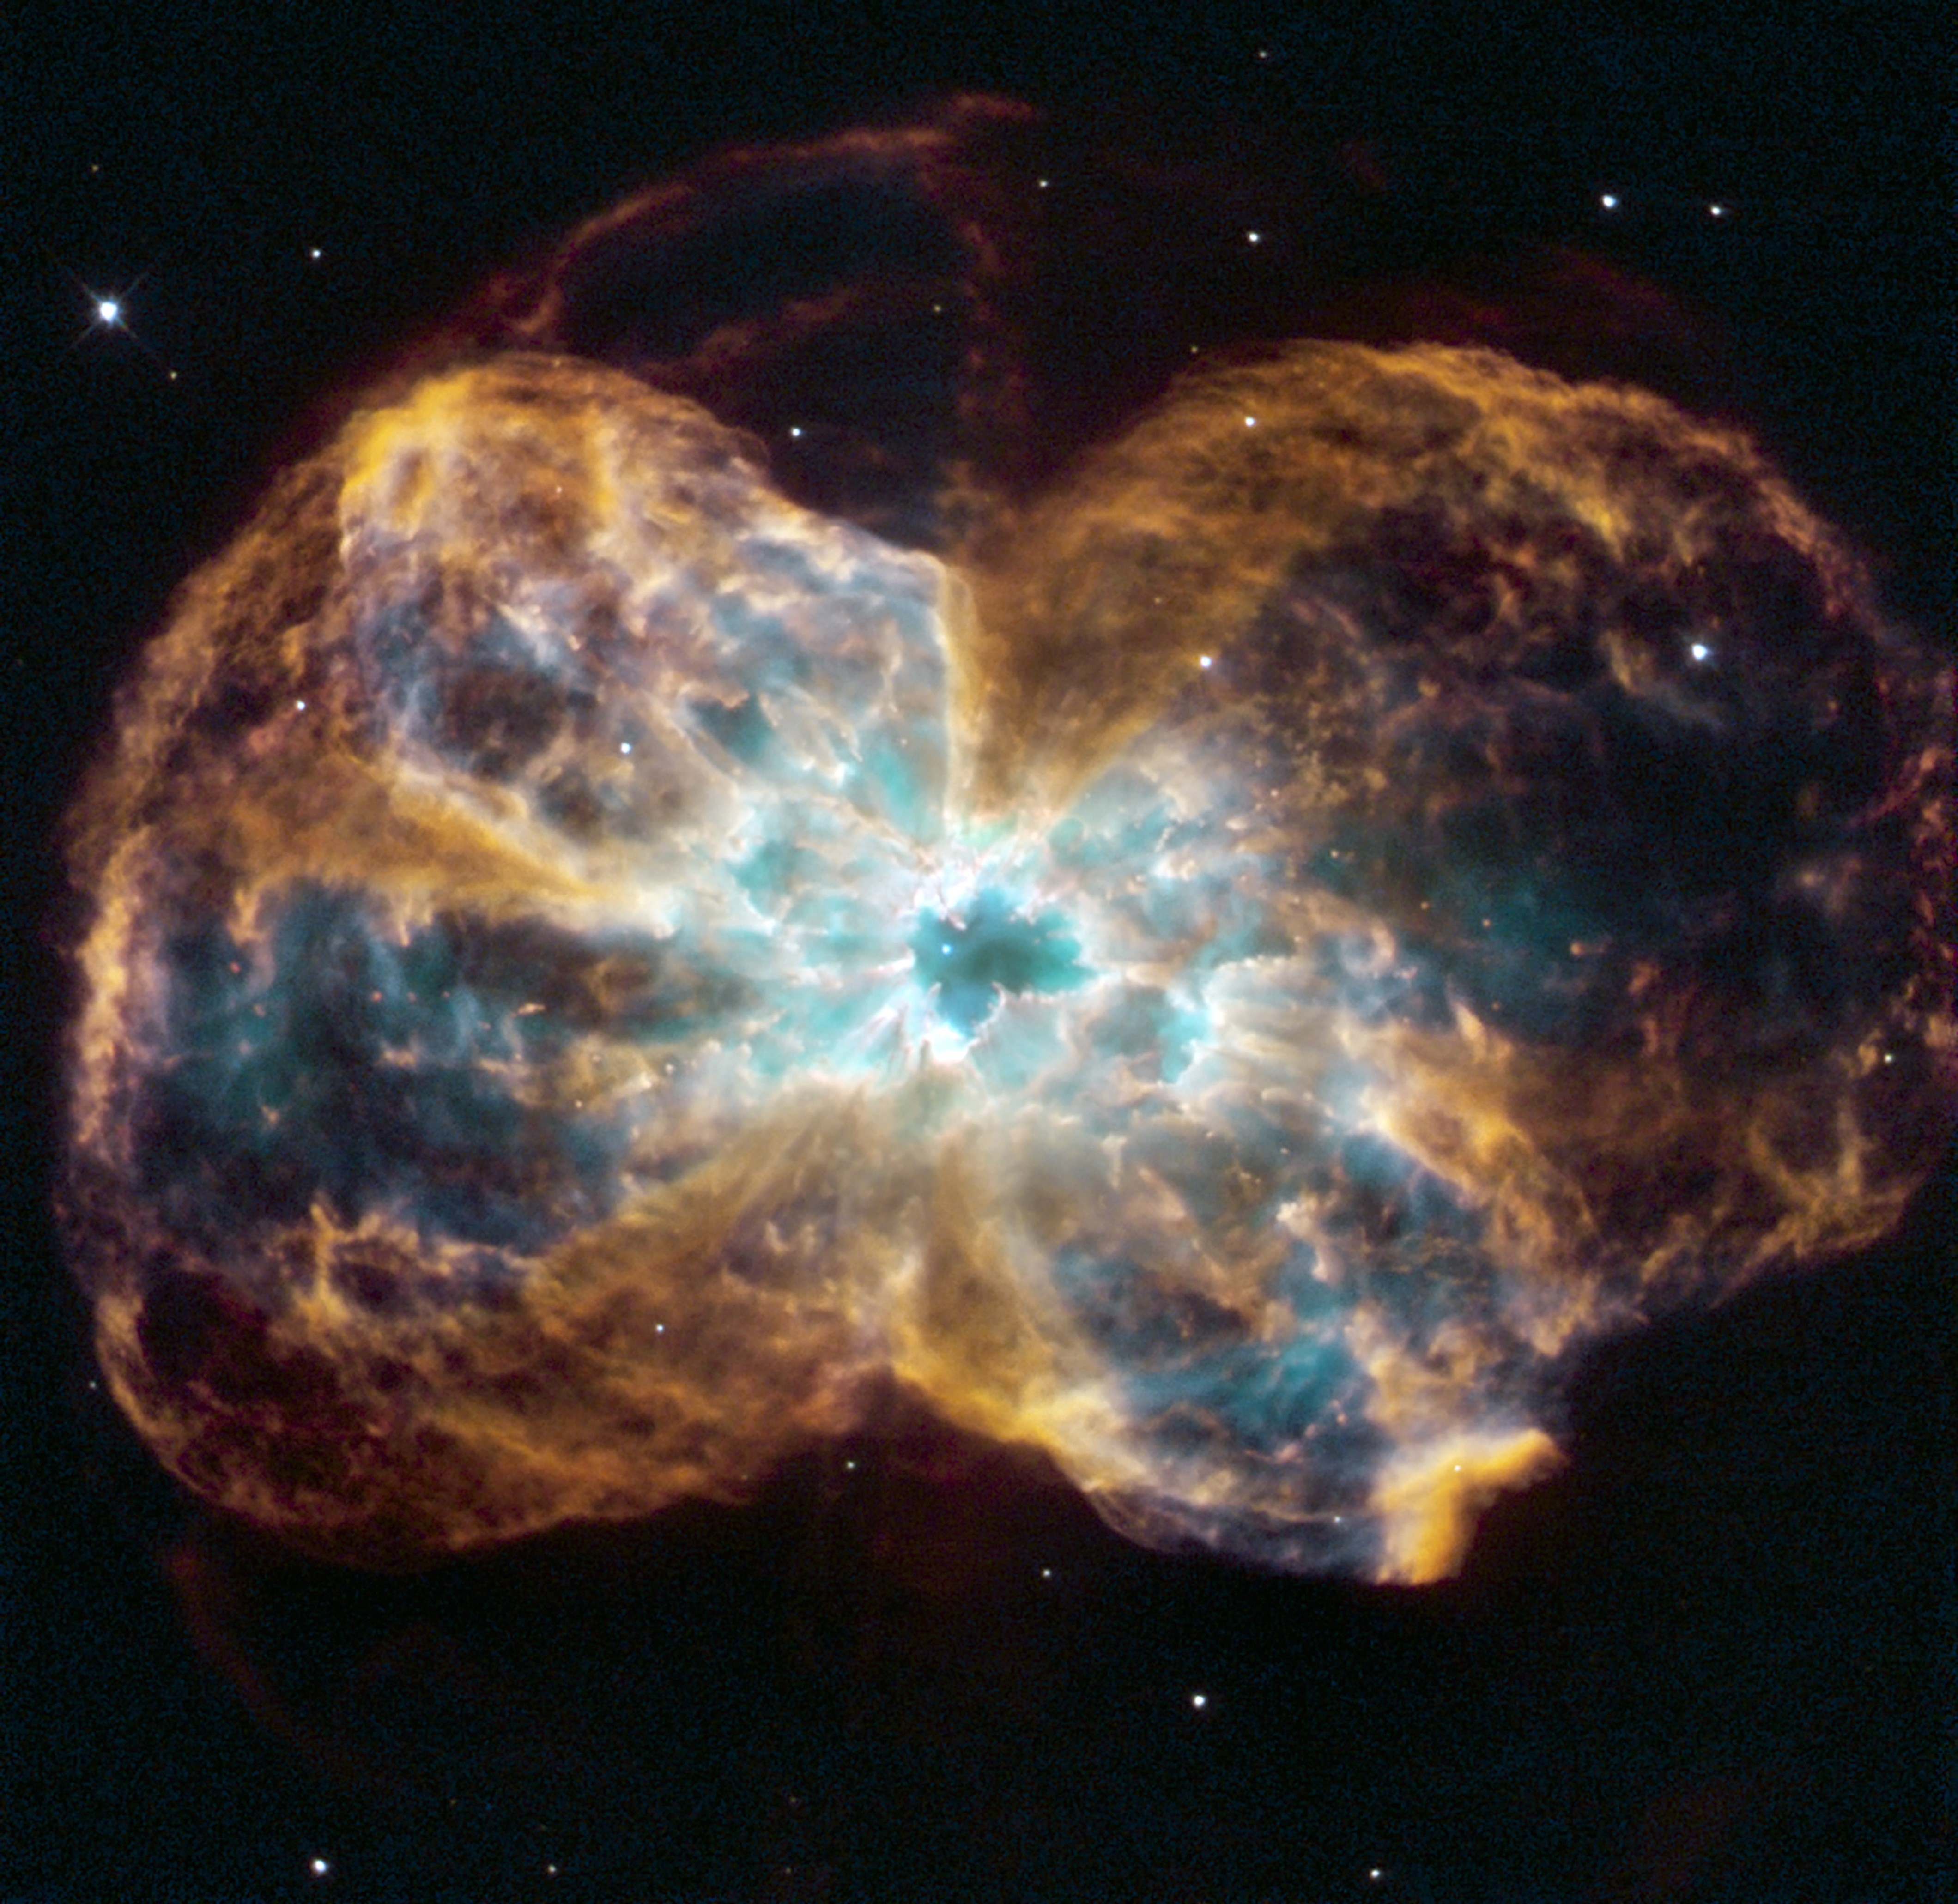 A burned-out star, called a white dwarf.